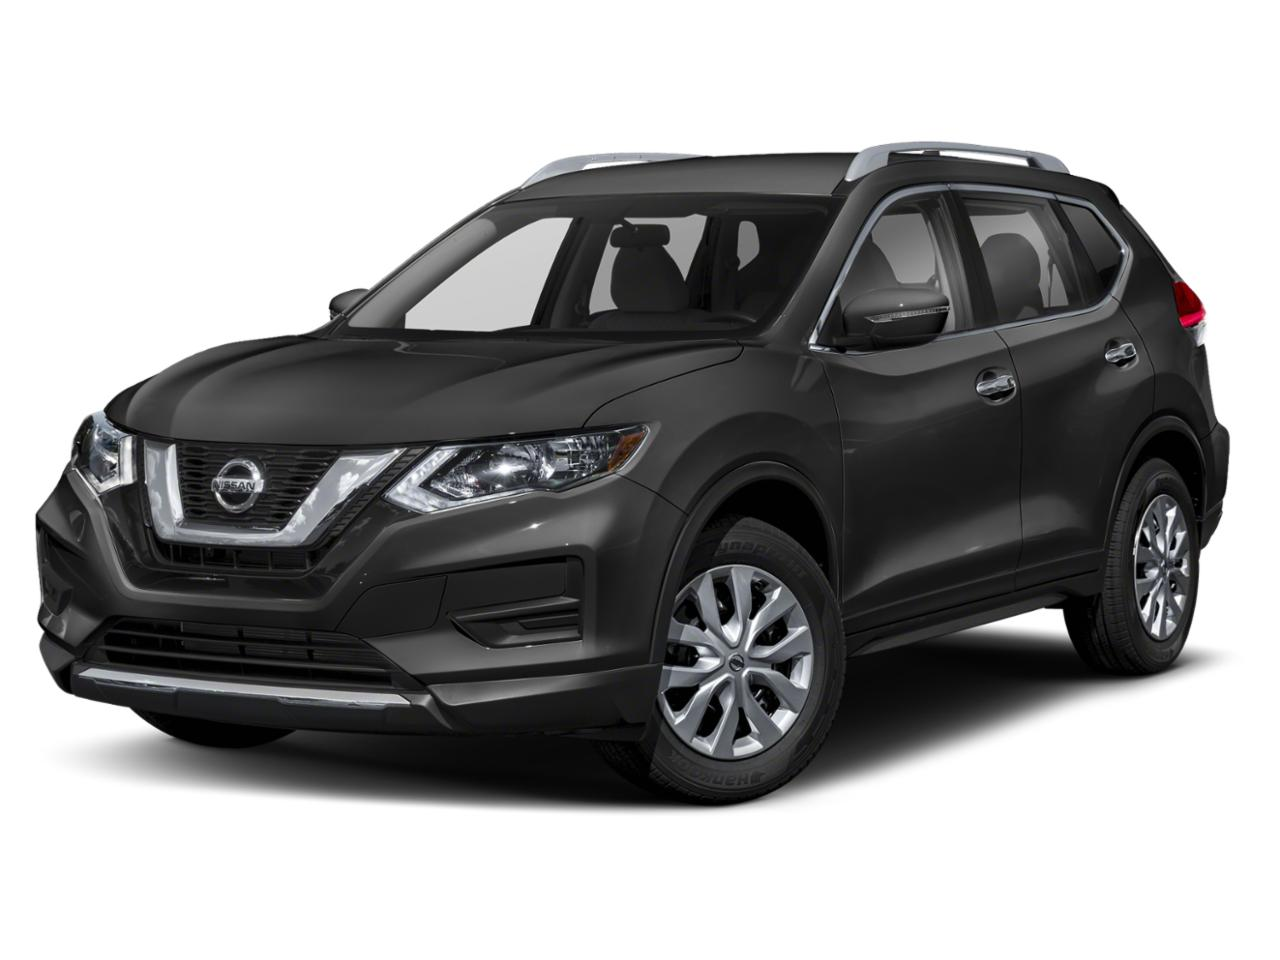 2018 Nissan Rogue Vehicle Photo in Owensboro, KY 42302